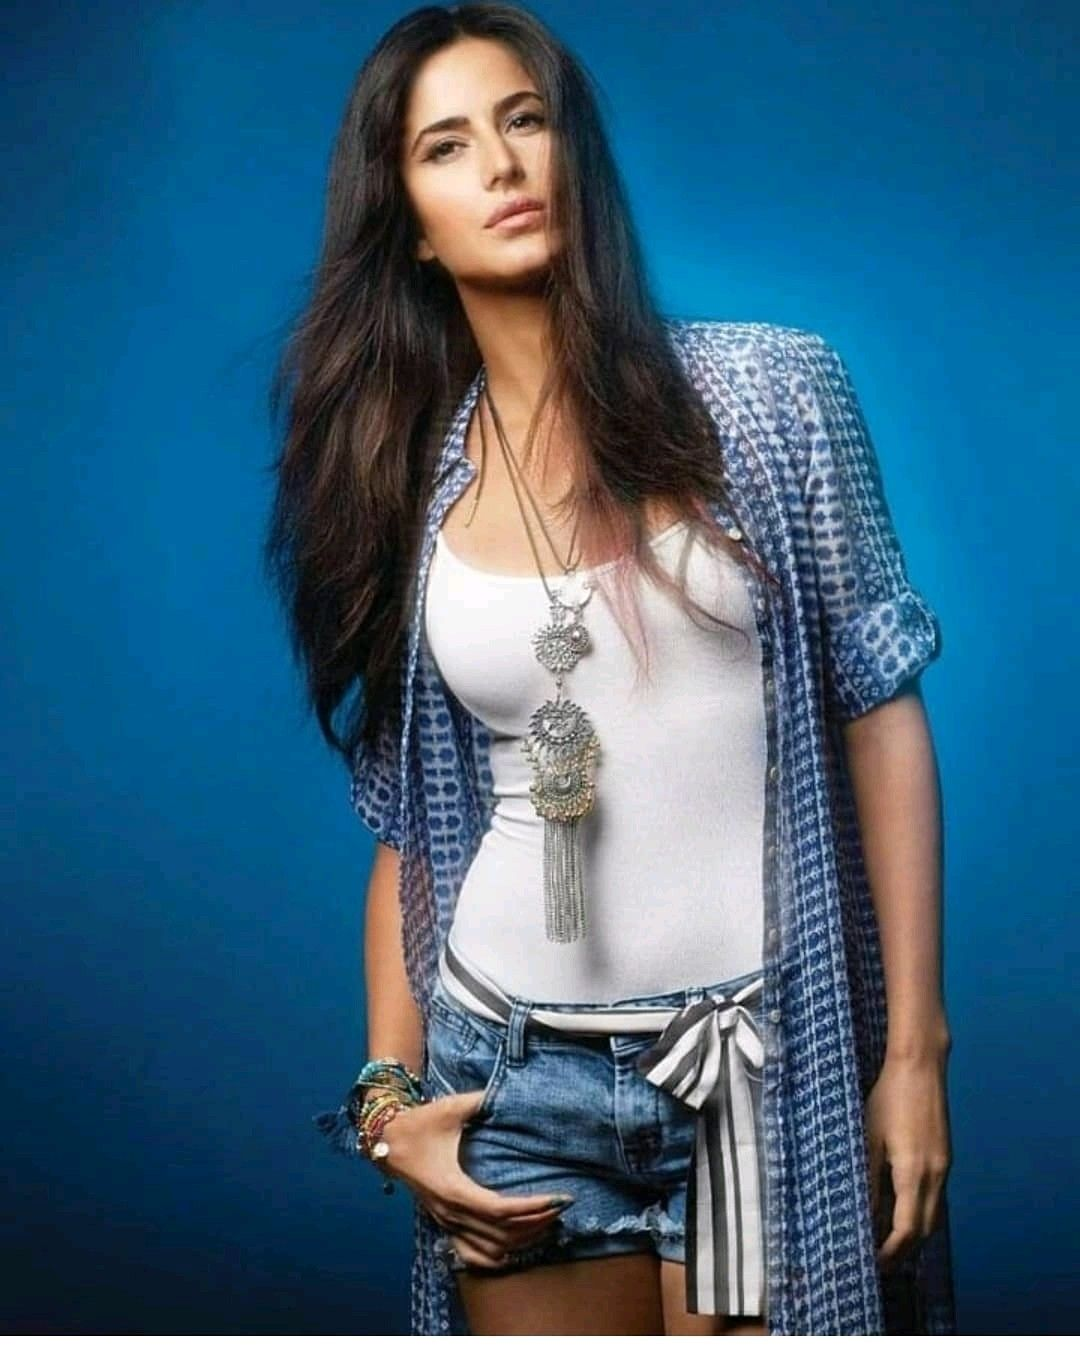 Pin by Actress Pin on Beautiful faces in 2020 | Katrina ...